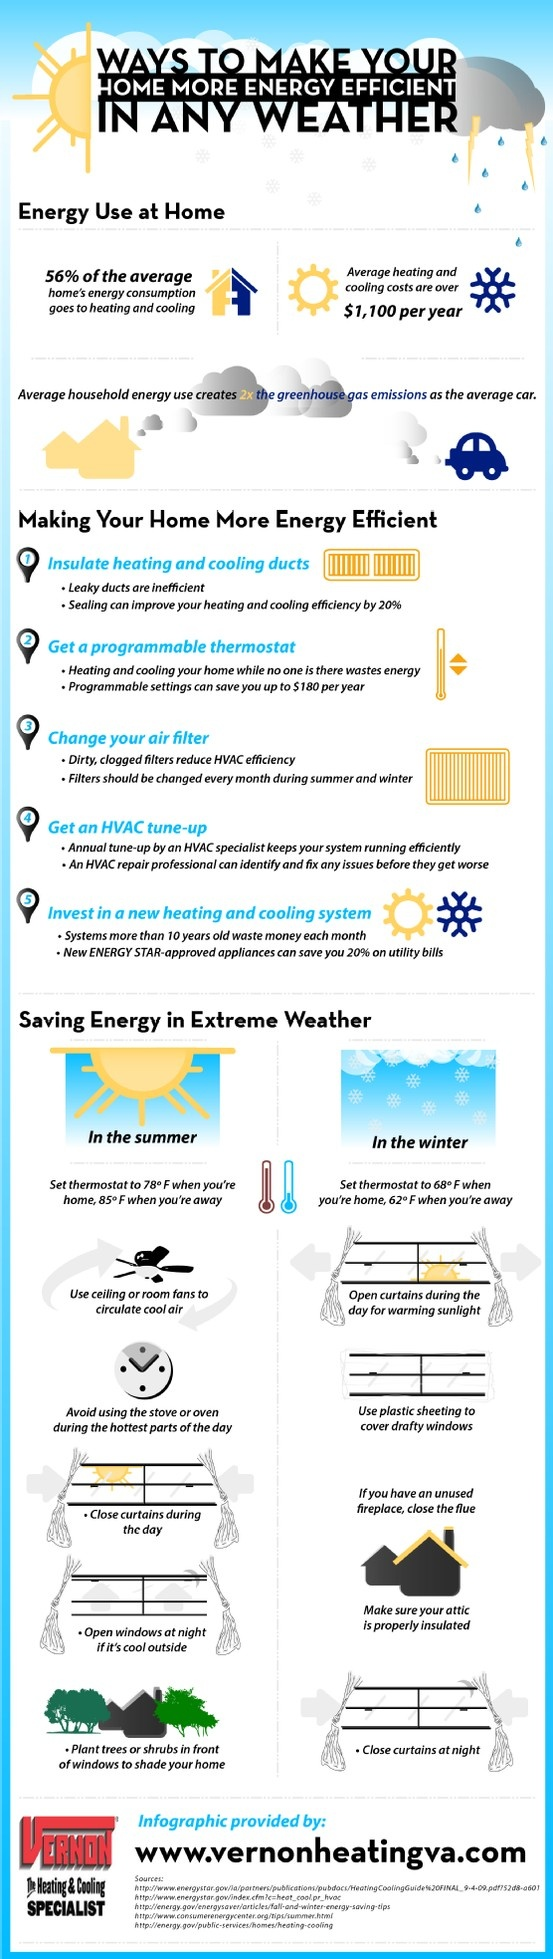 25 best images about environmental infographics on for Ways you can save energy